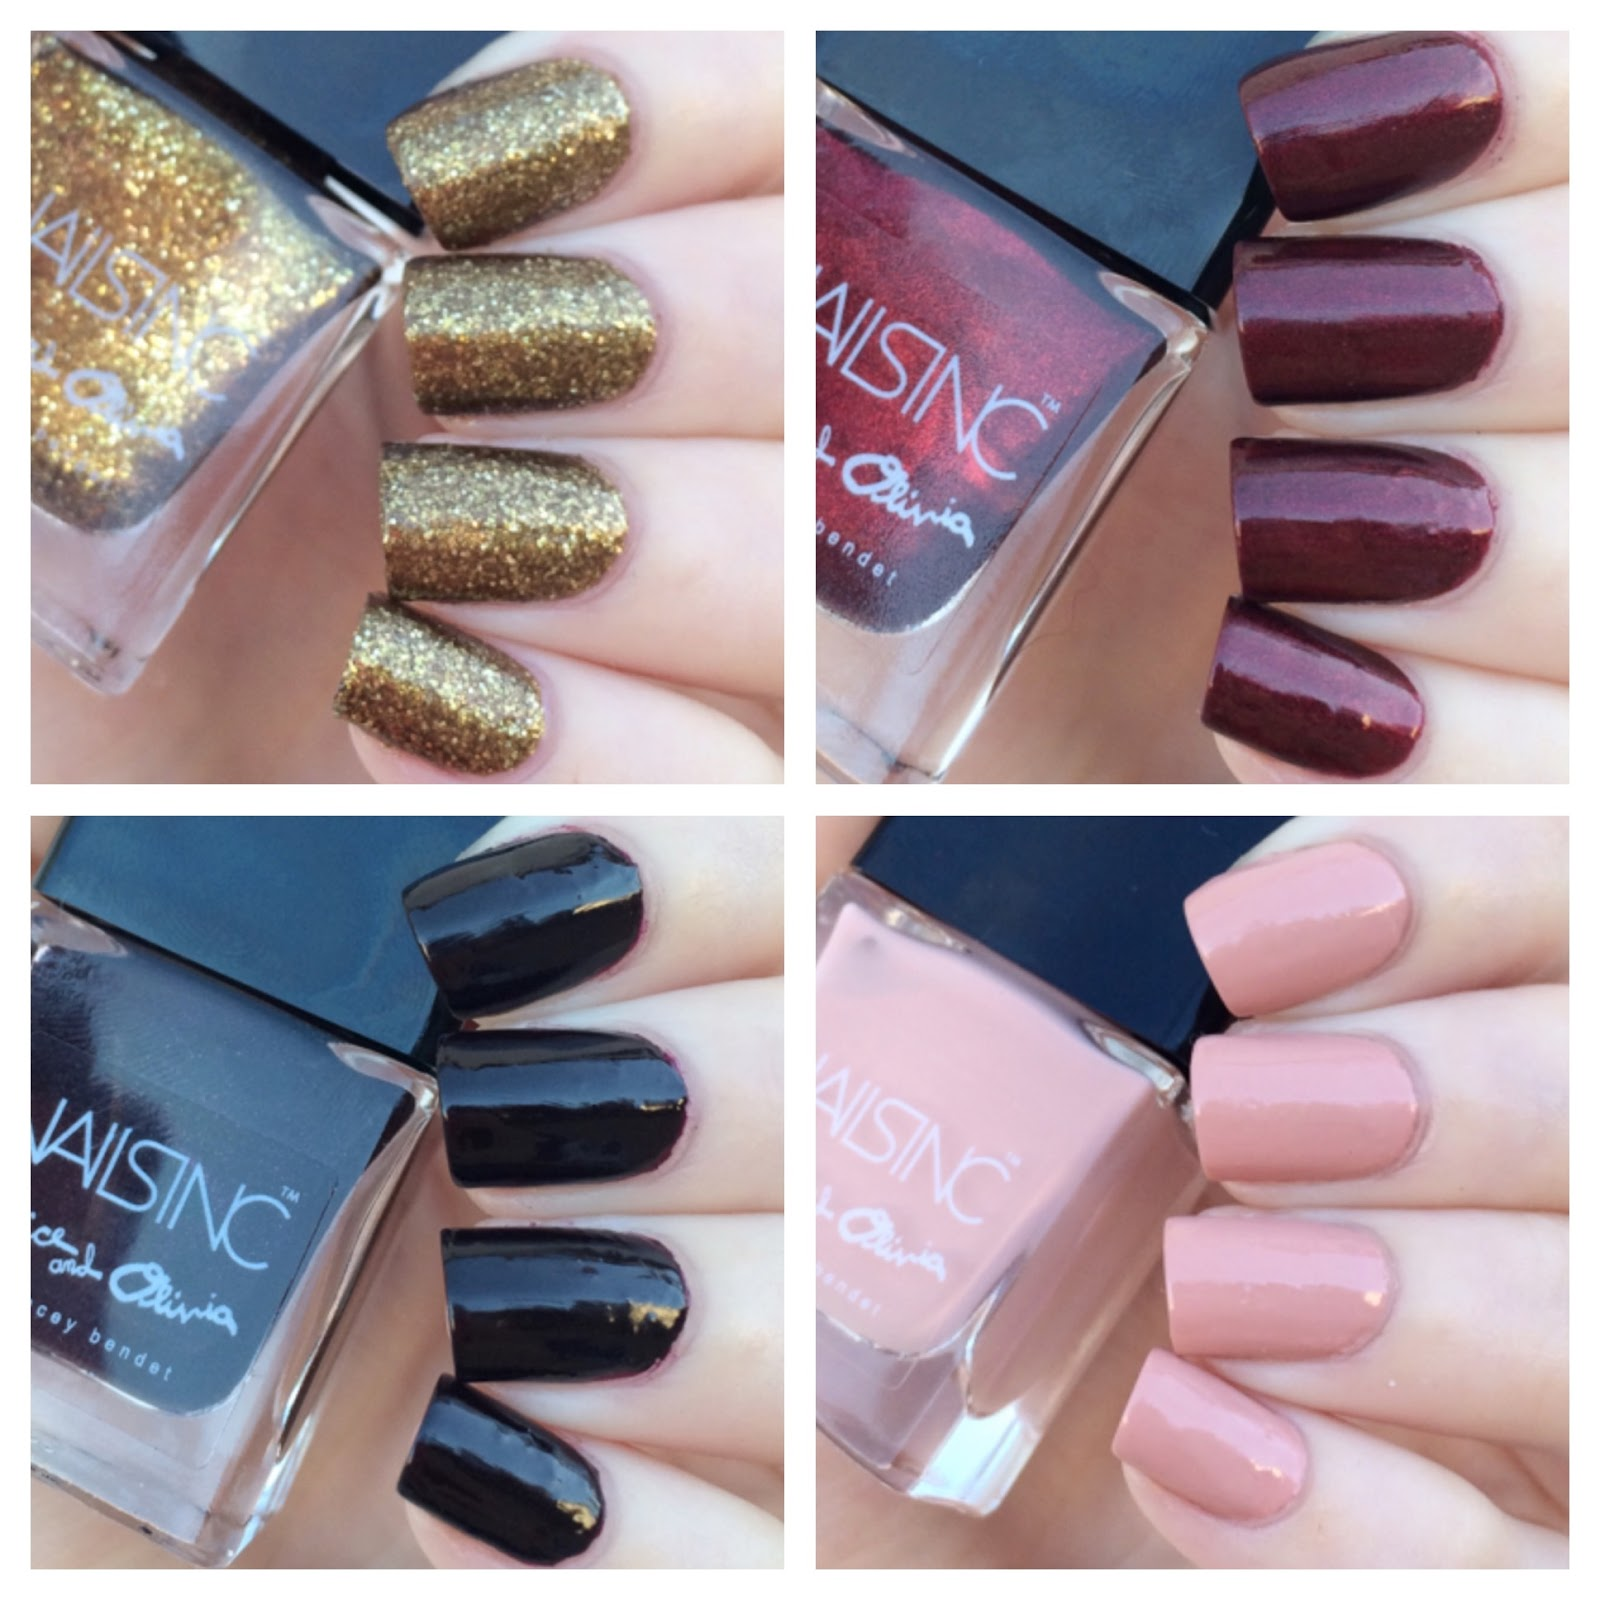 cat eyes & skinny jeans: nails inc. alice + olivia by Stacey Bendet ...